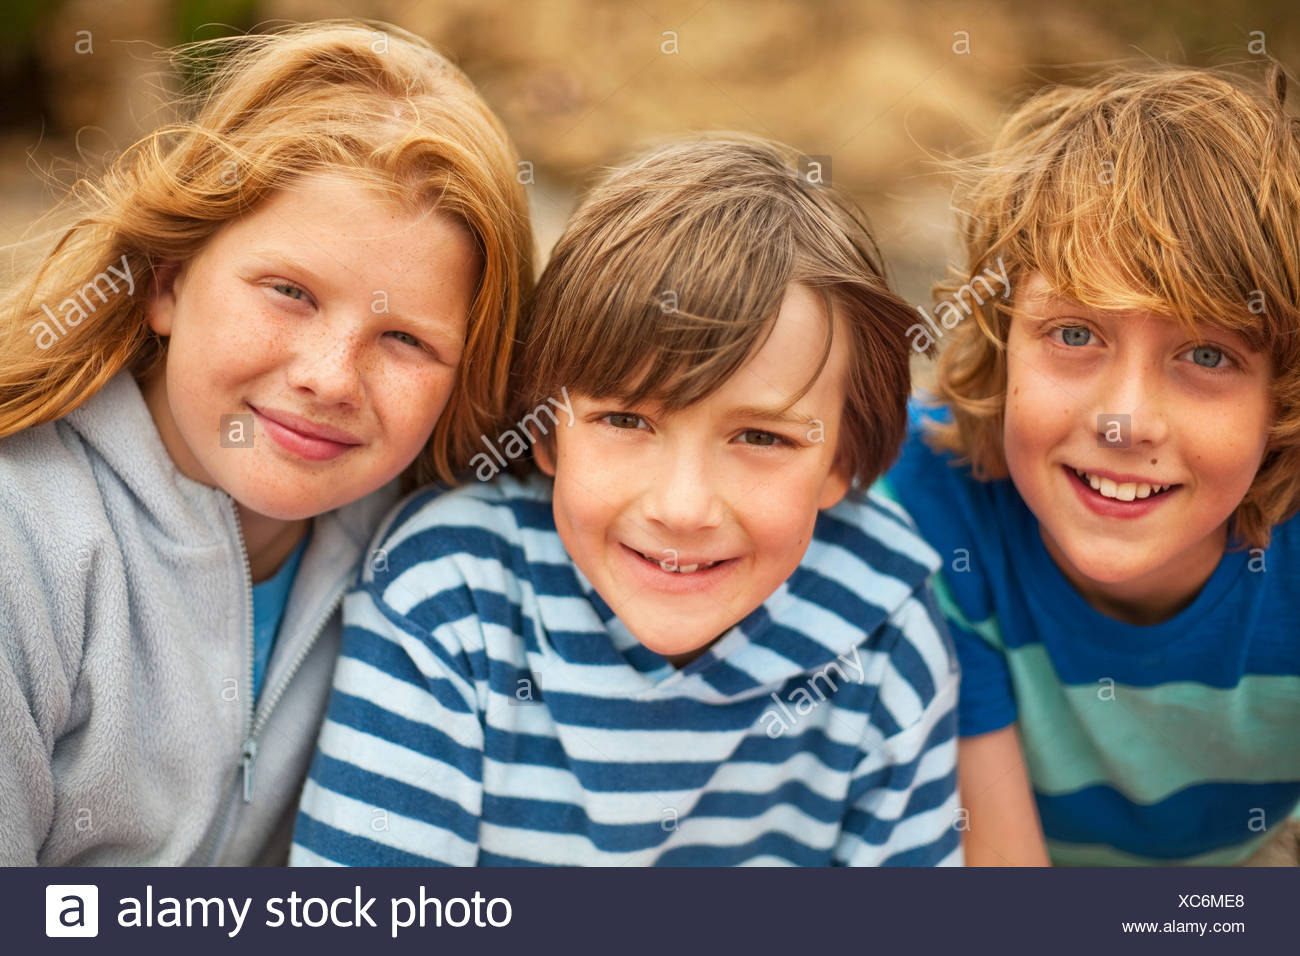 Portrait of three friends smiling at camera - Stock Image